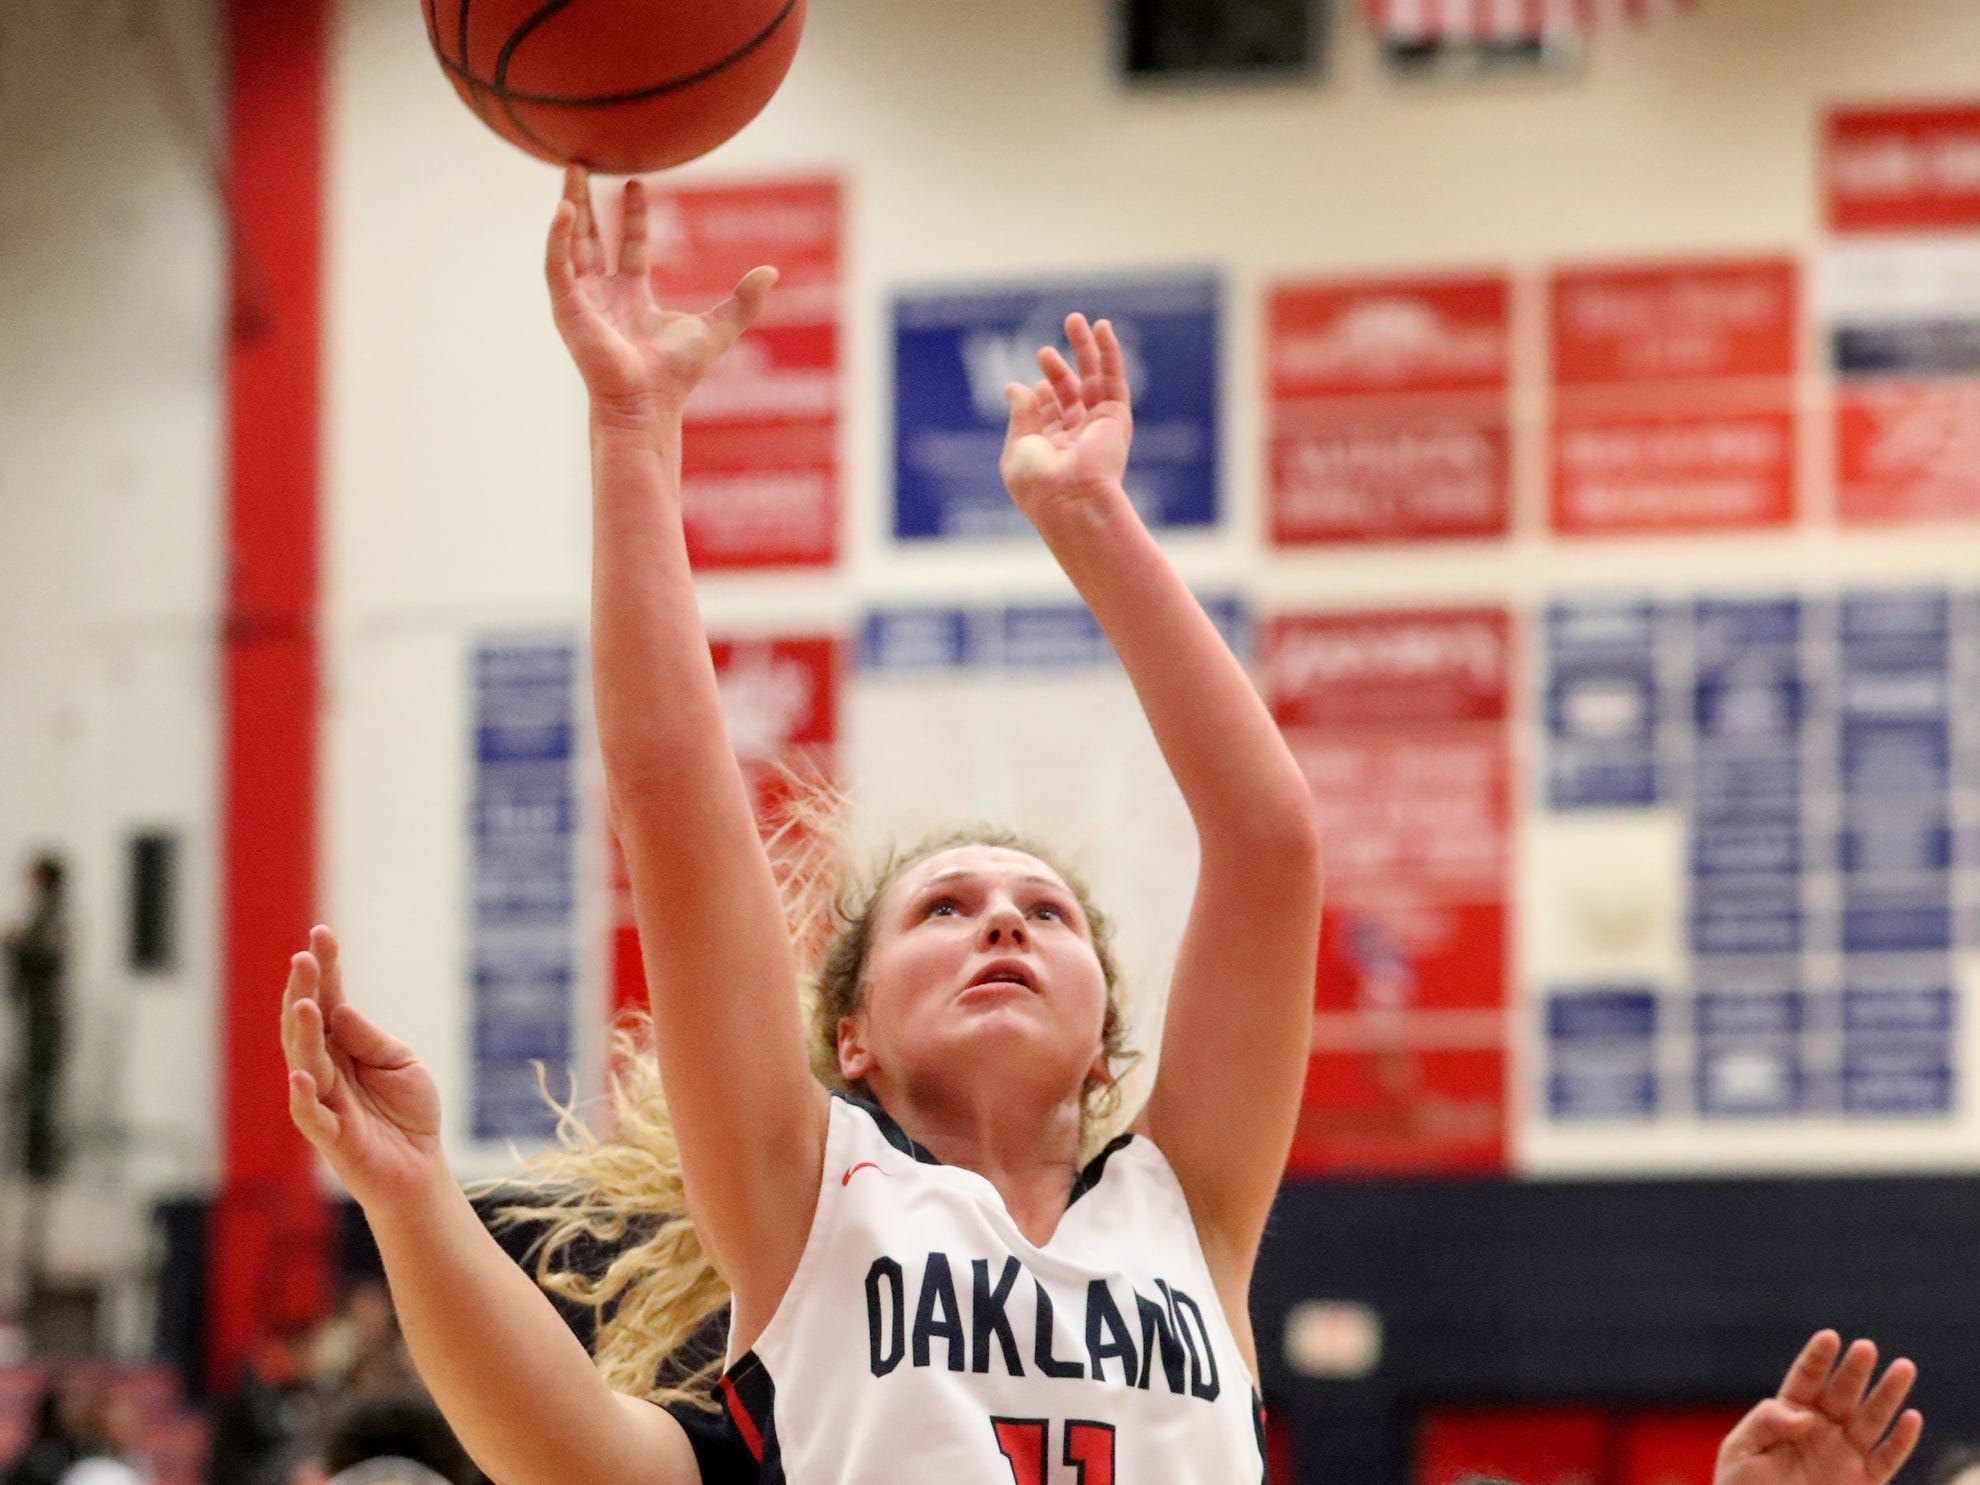 Oakland's Claira McGowan (11) shoots the ball during the game against Siegel at Oakland on Tuesday, Dec.. 4, 2018.